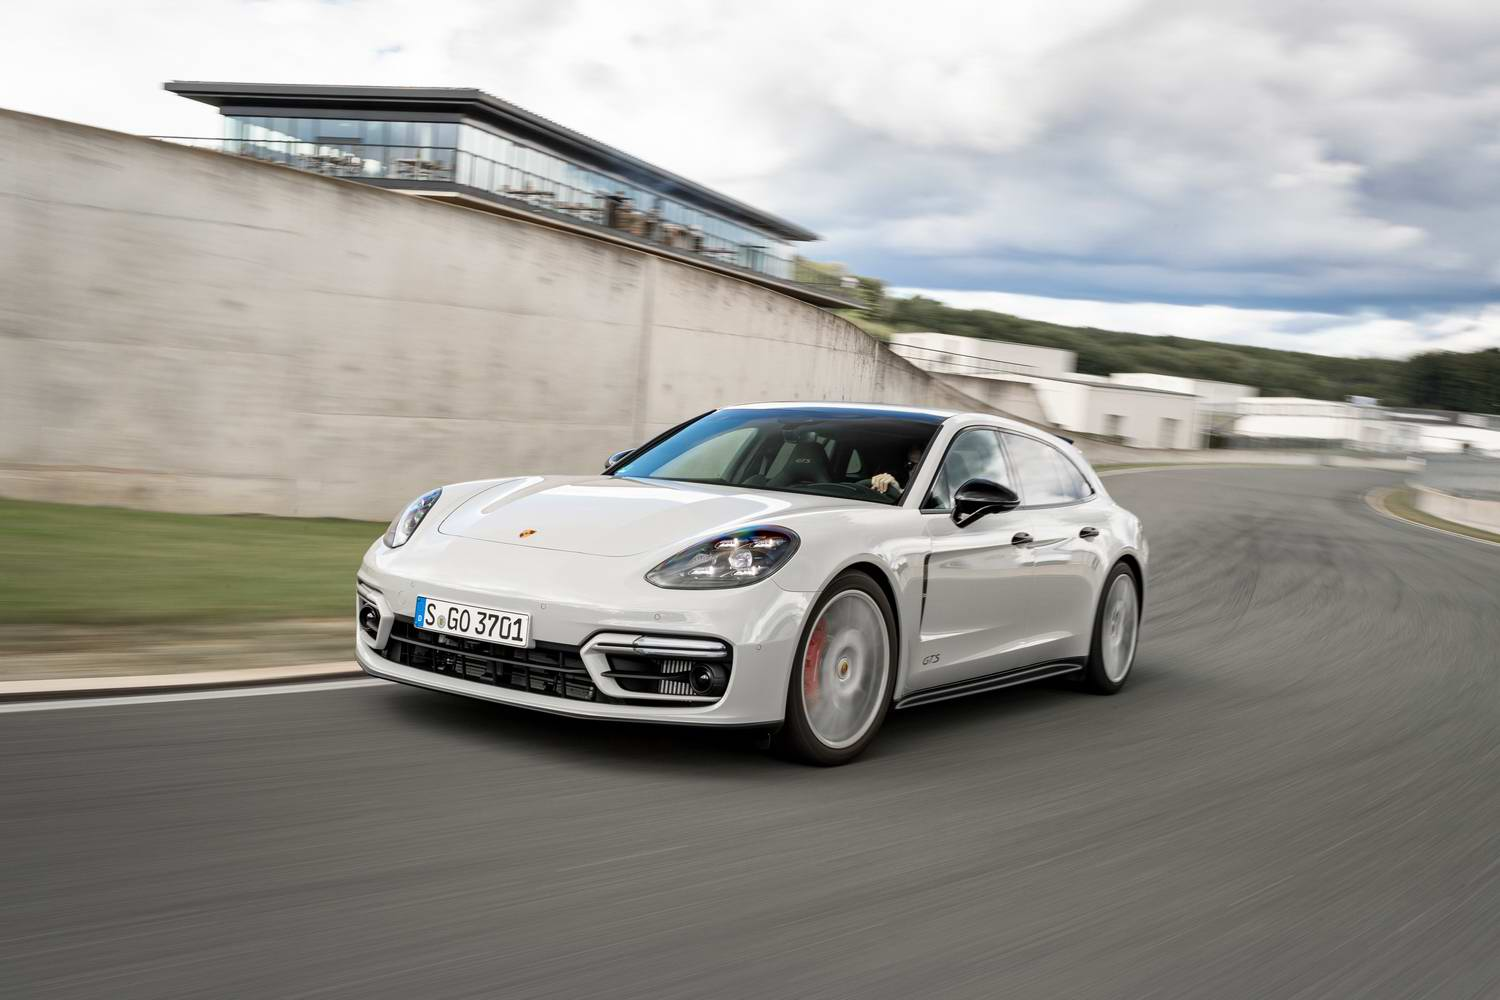 Porsche Panamera Gts Sport Turismo 2021 Reviews Complete Car